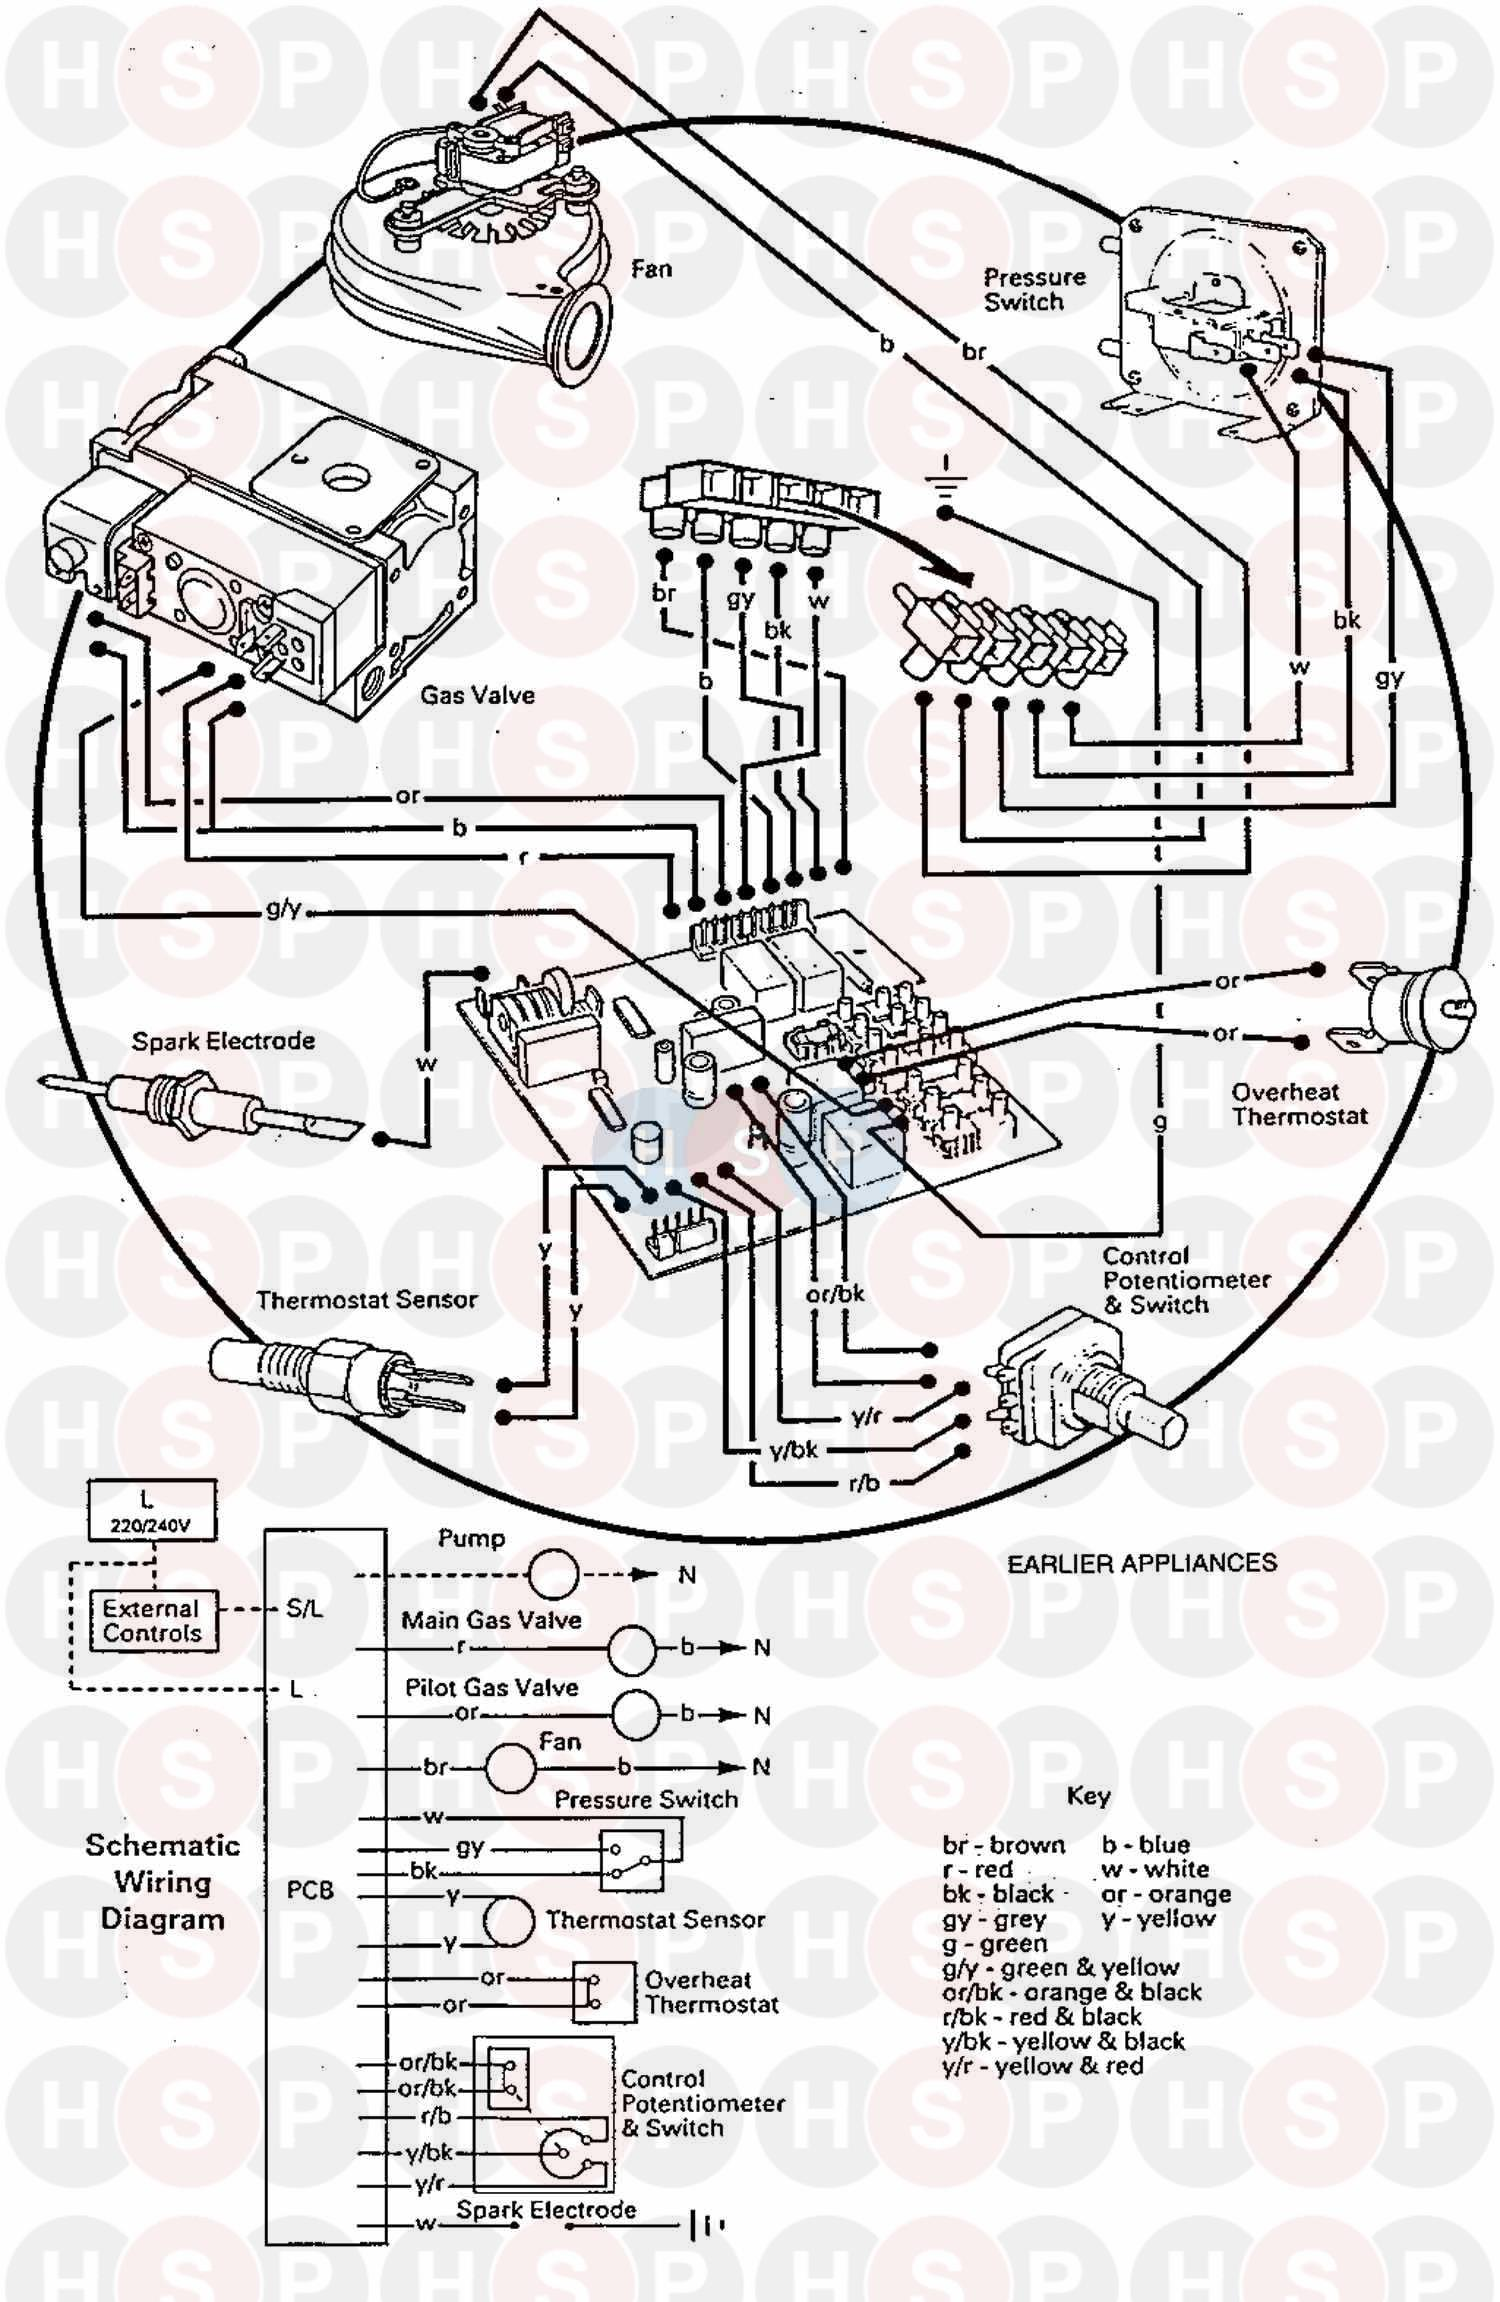 baxi solo pf 2 60 appliance diagram  wiring diagram  earlier applia